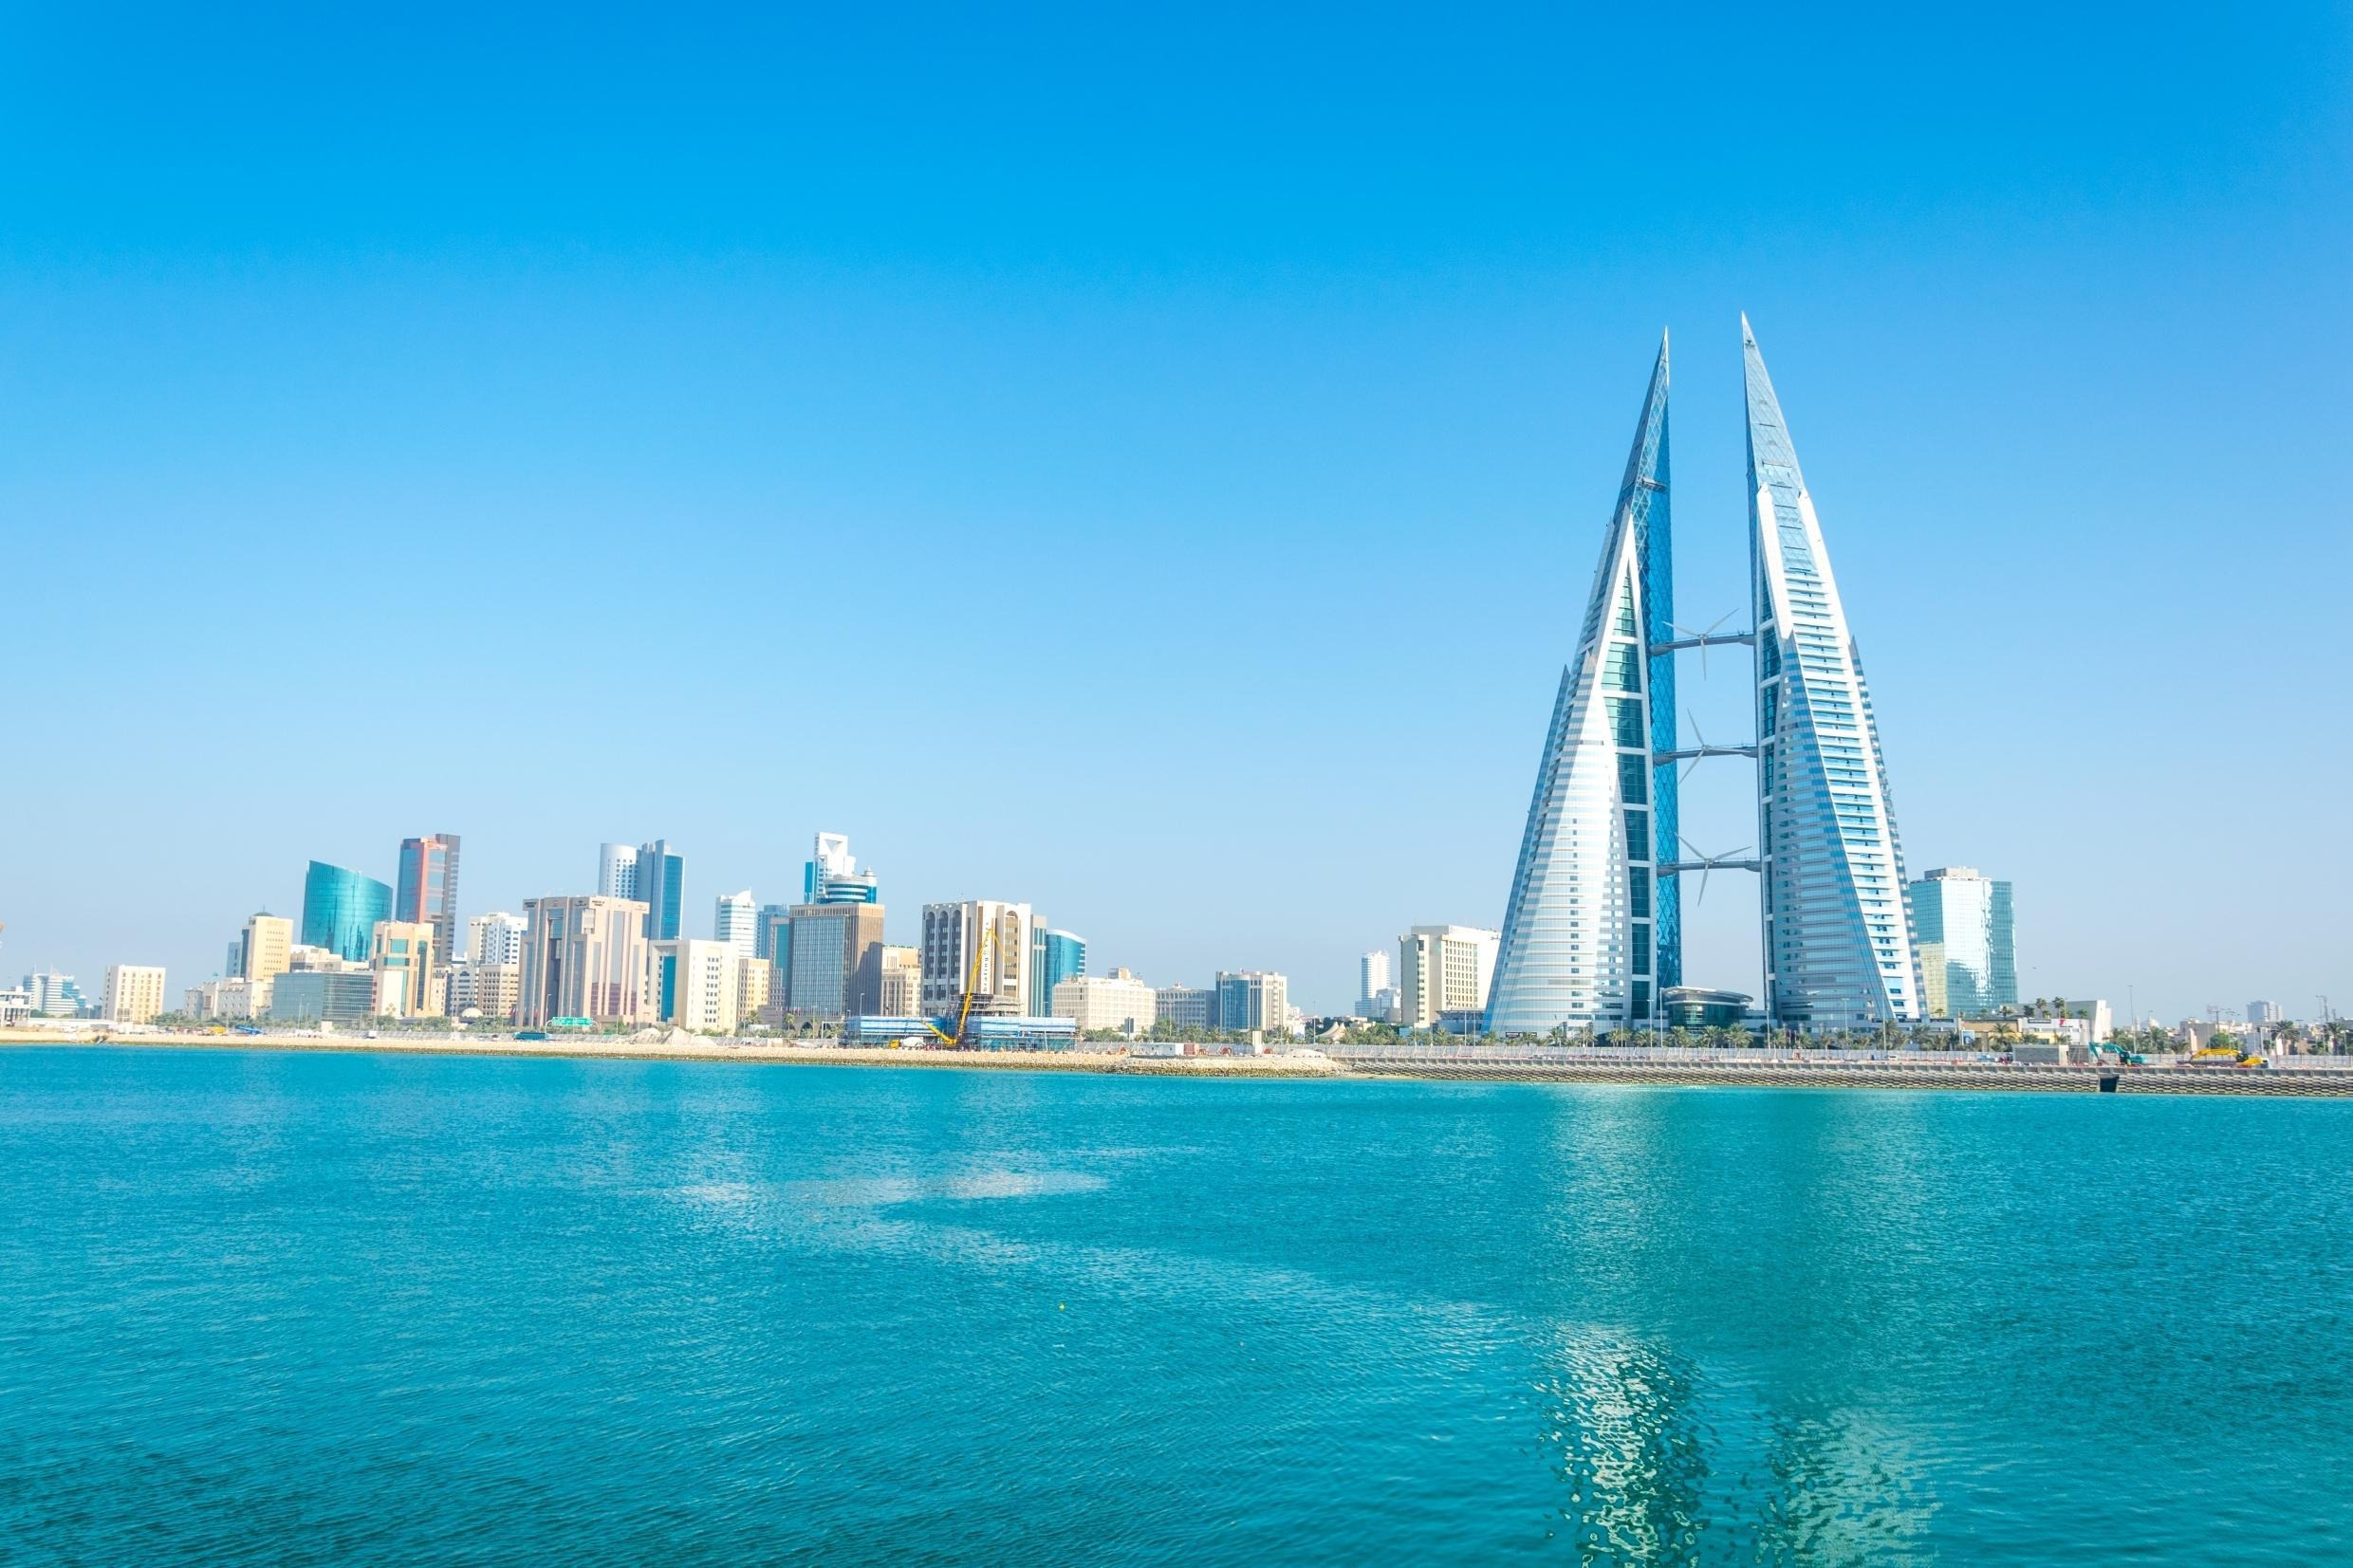 How to Spend 1 Day in Manama